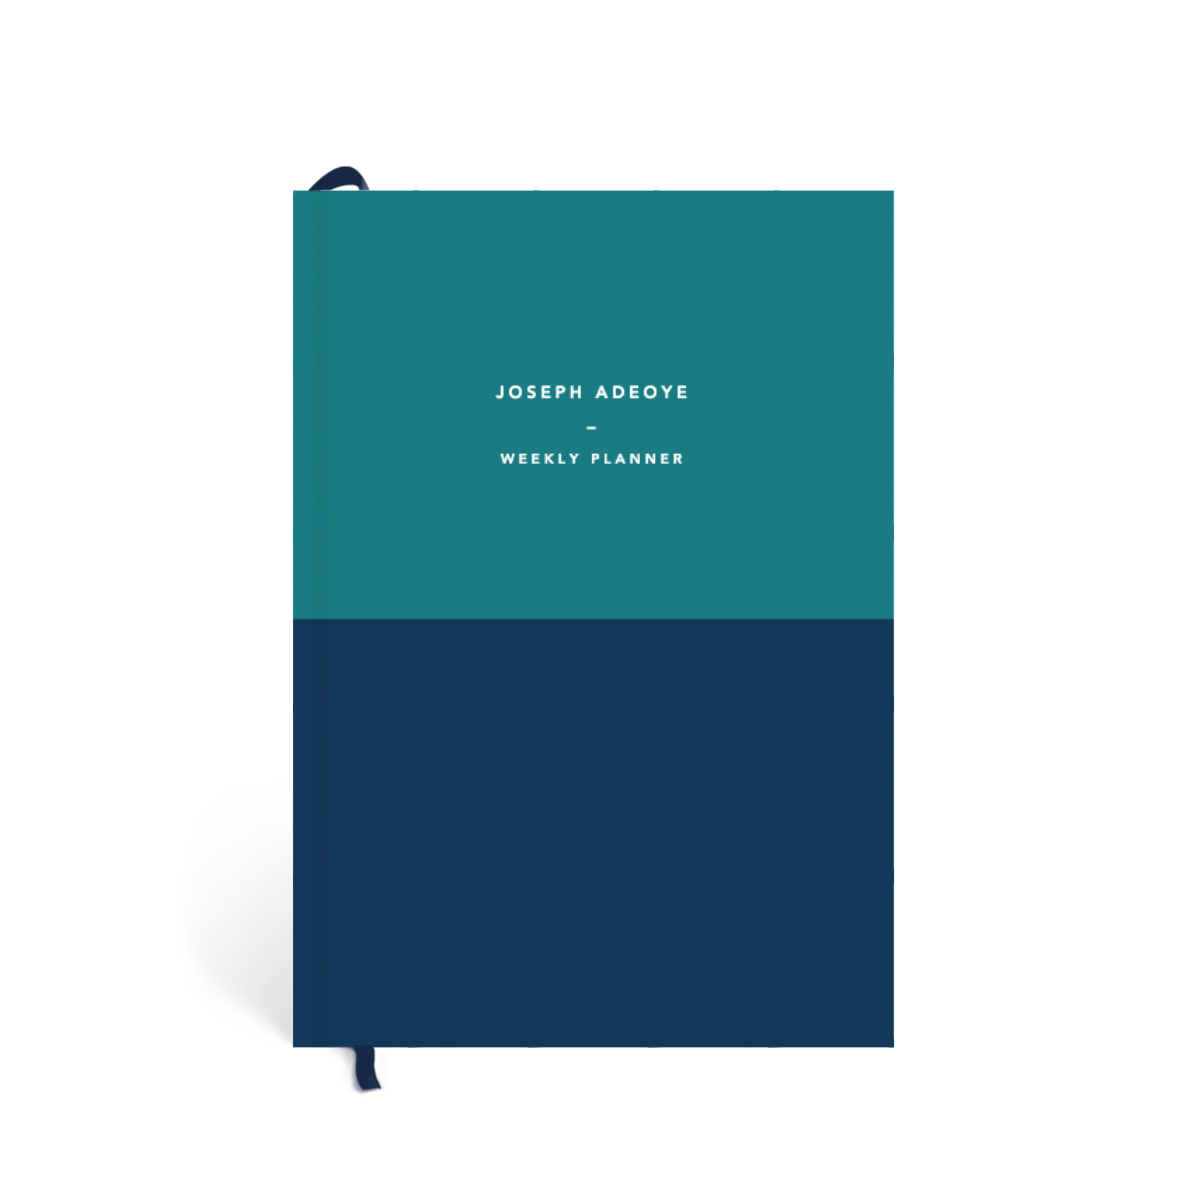 Https%3a%2f%2fwww.papier.com%2fproduct image%2f67266%2f36%2fcolourblock teal navy 15948 front 1551095808.png?ixlib=rb 1.1